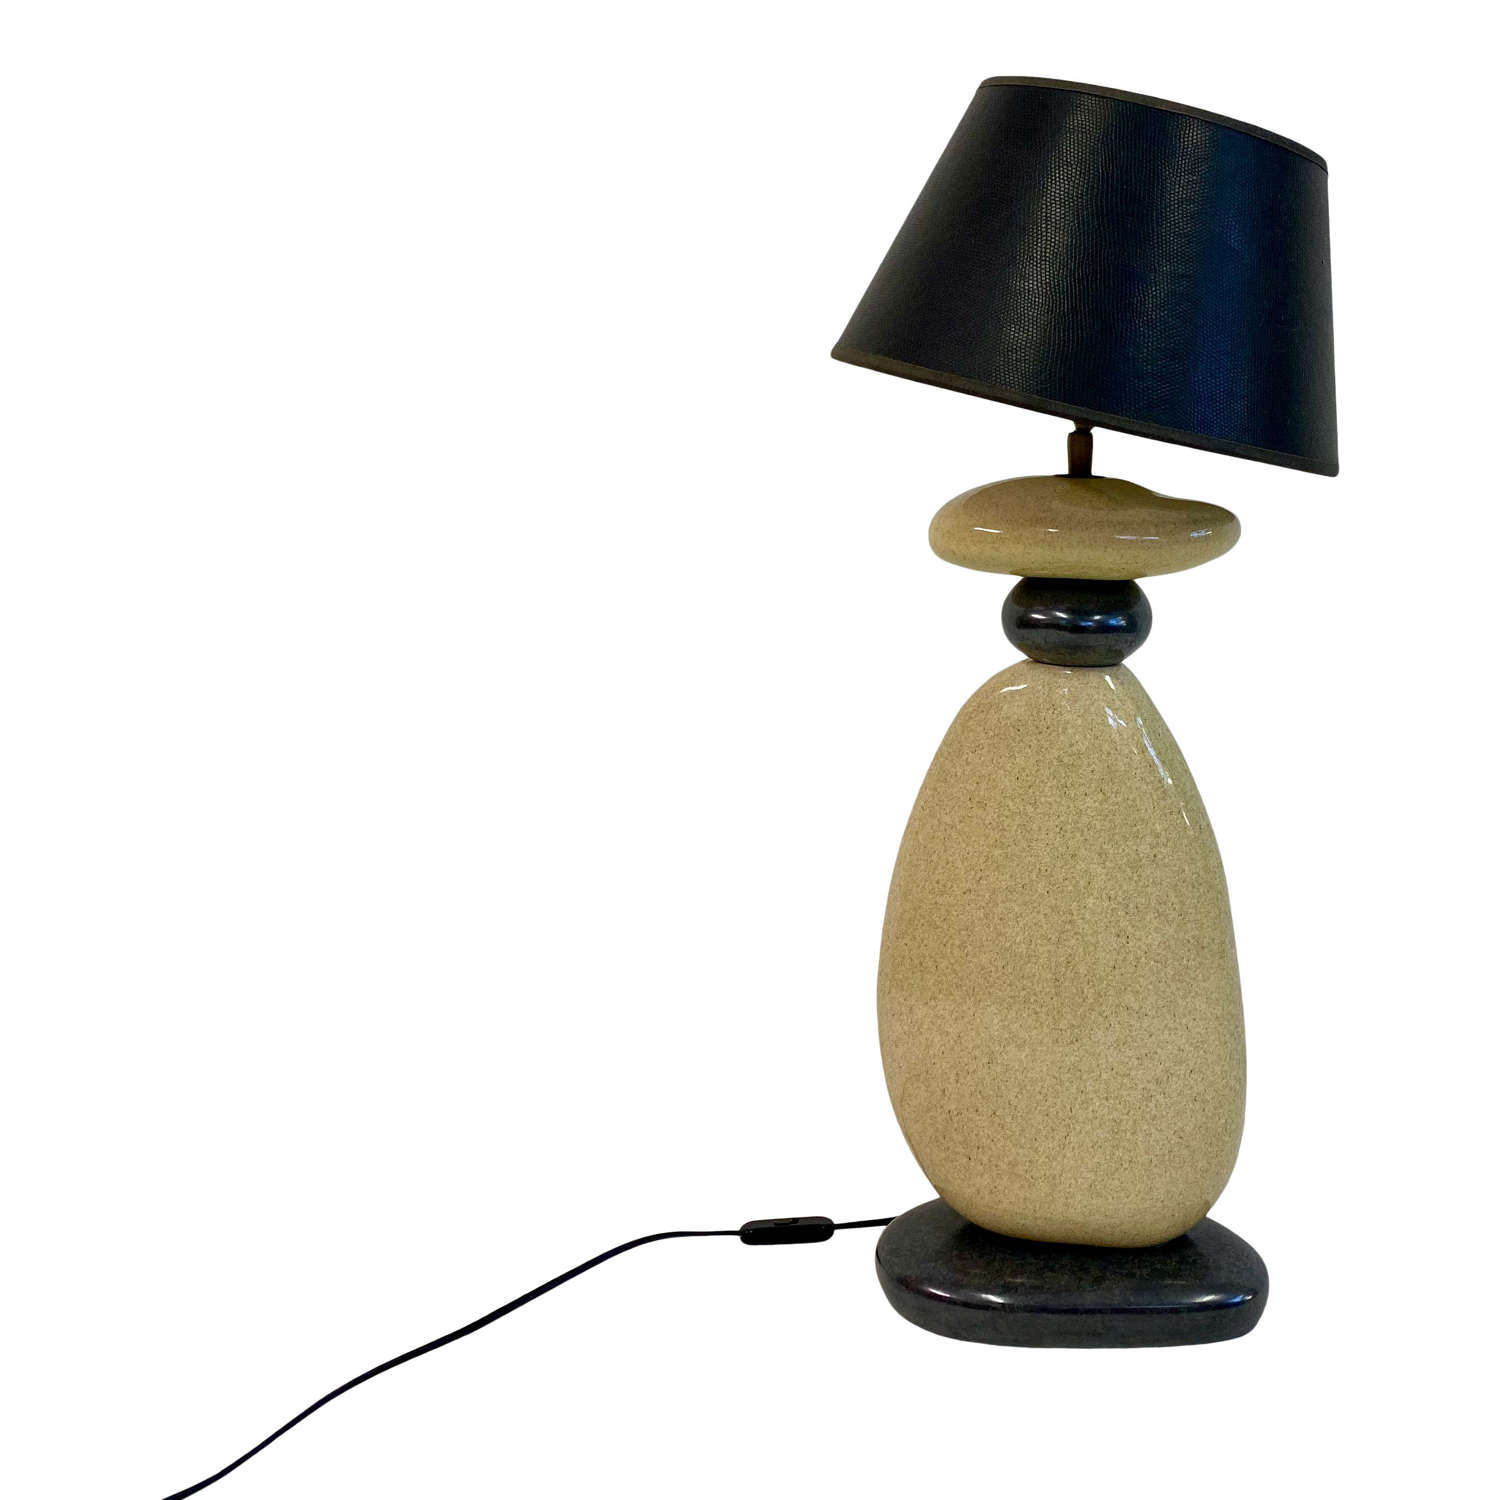 Large 1980s French Ceramic Pebble Table Lamp from Francois Chatain